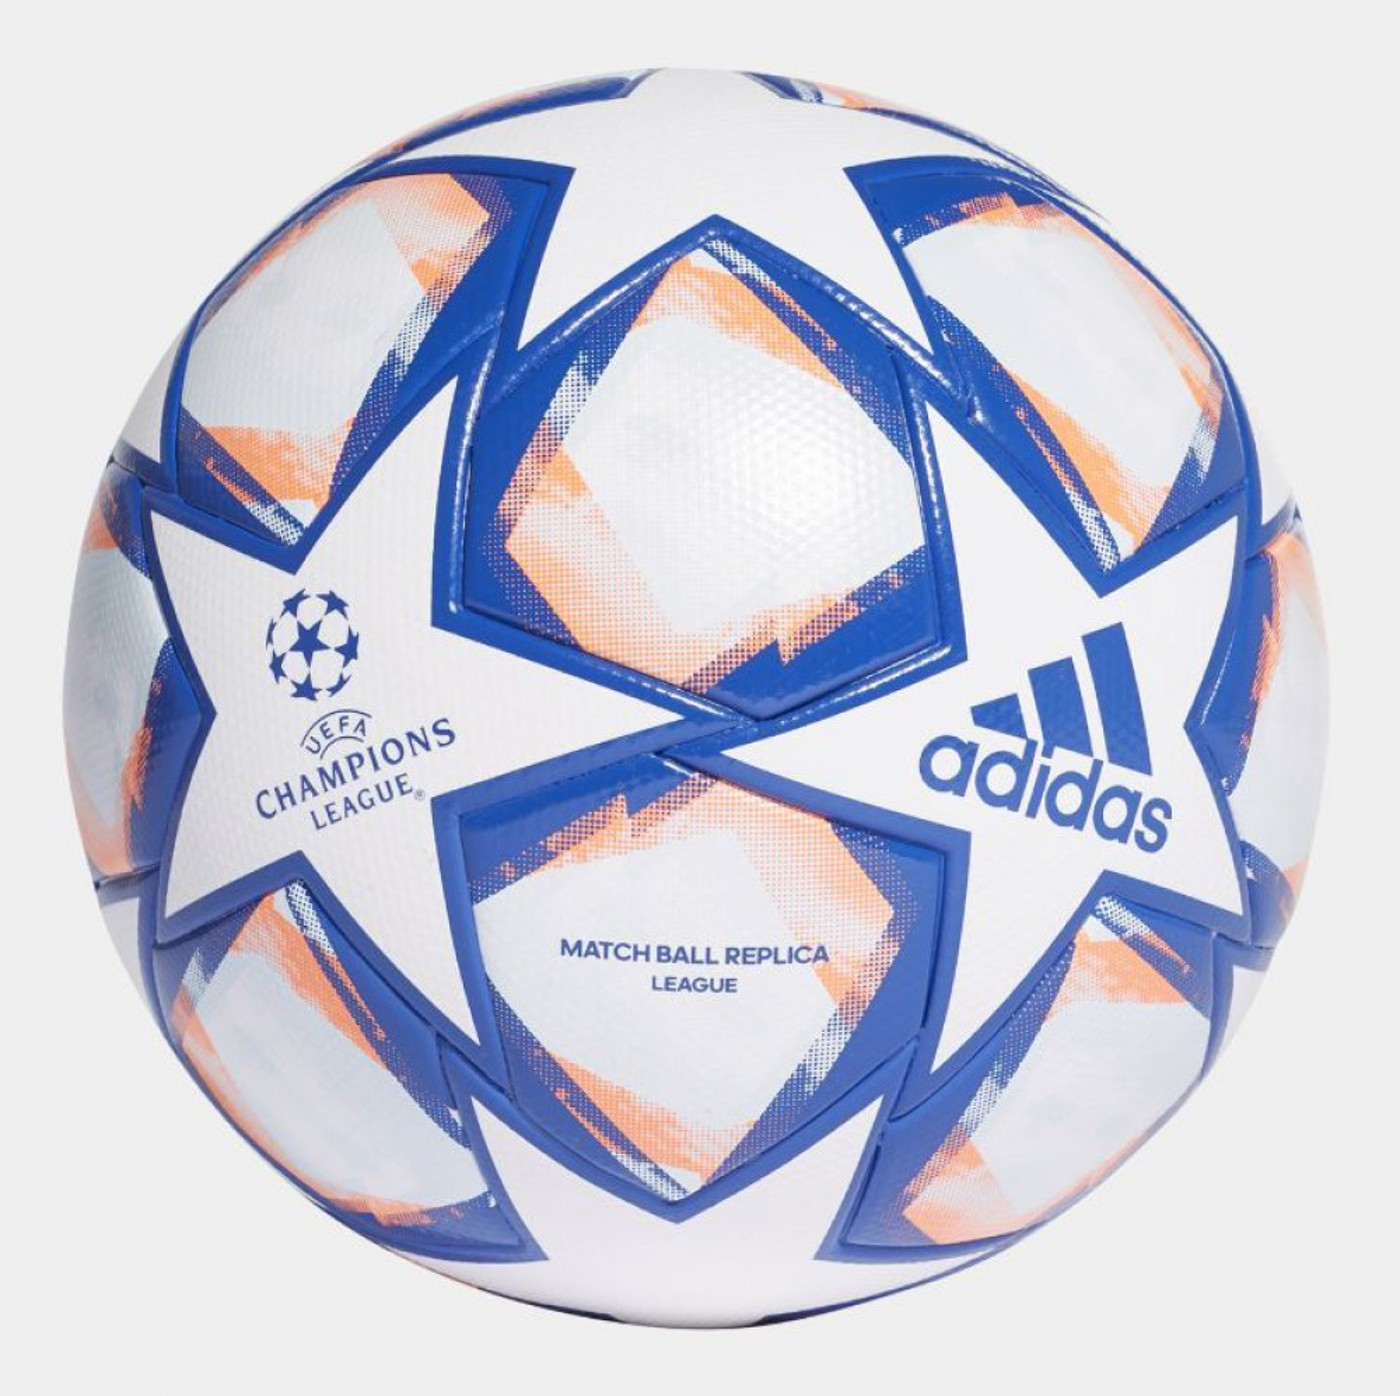 ADIDAS CHAMPIONS LEAGUE FIN 20 LGE